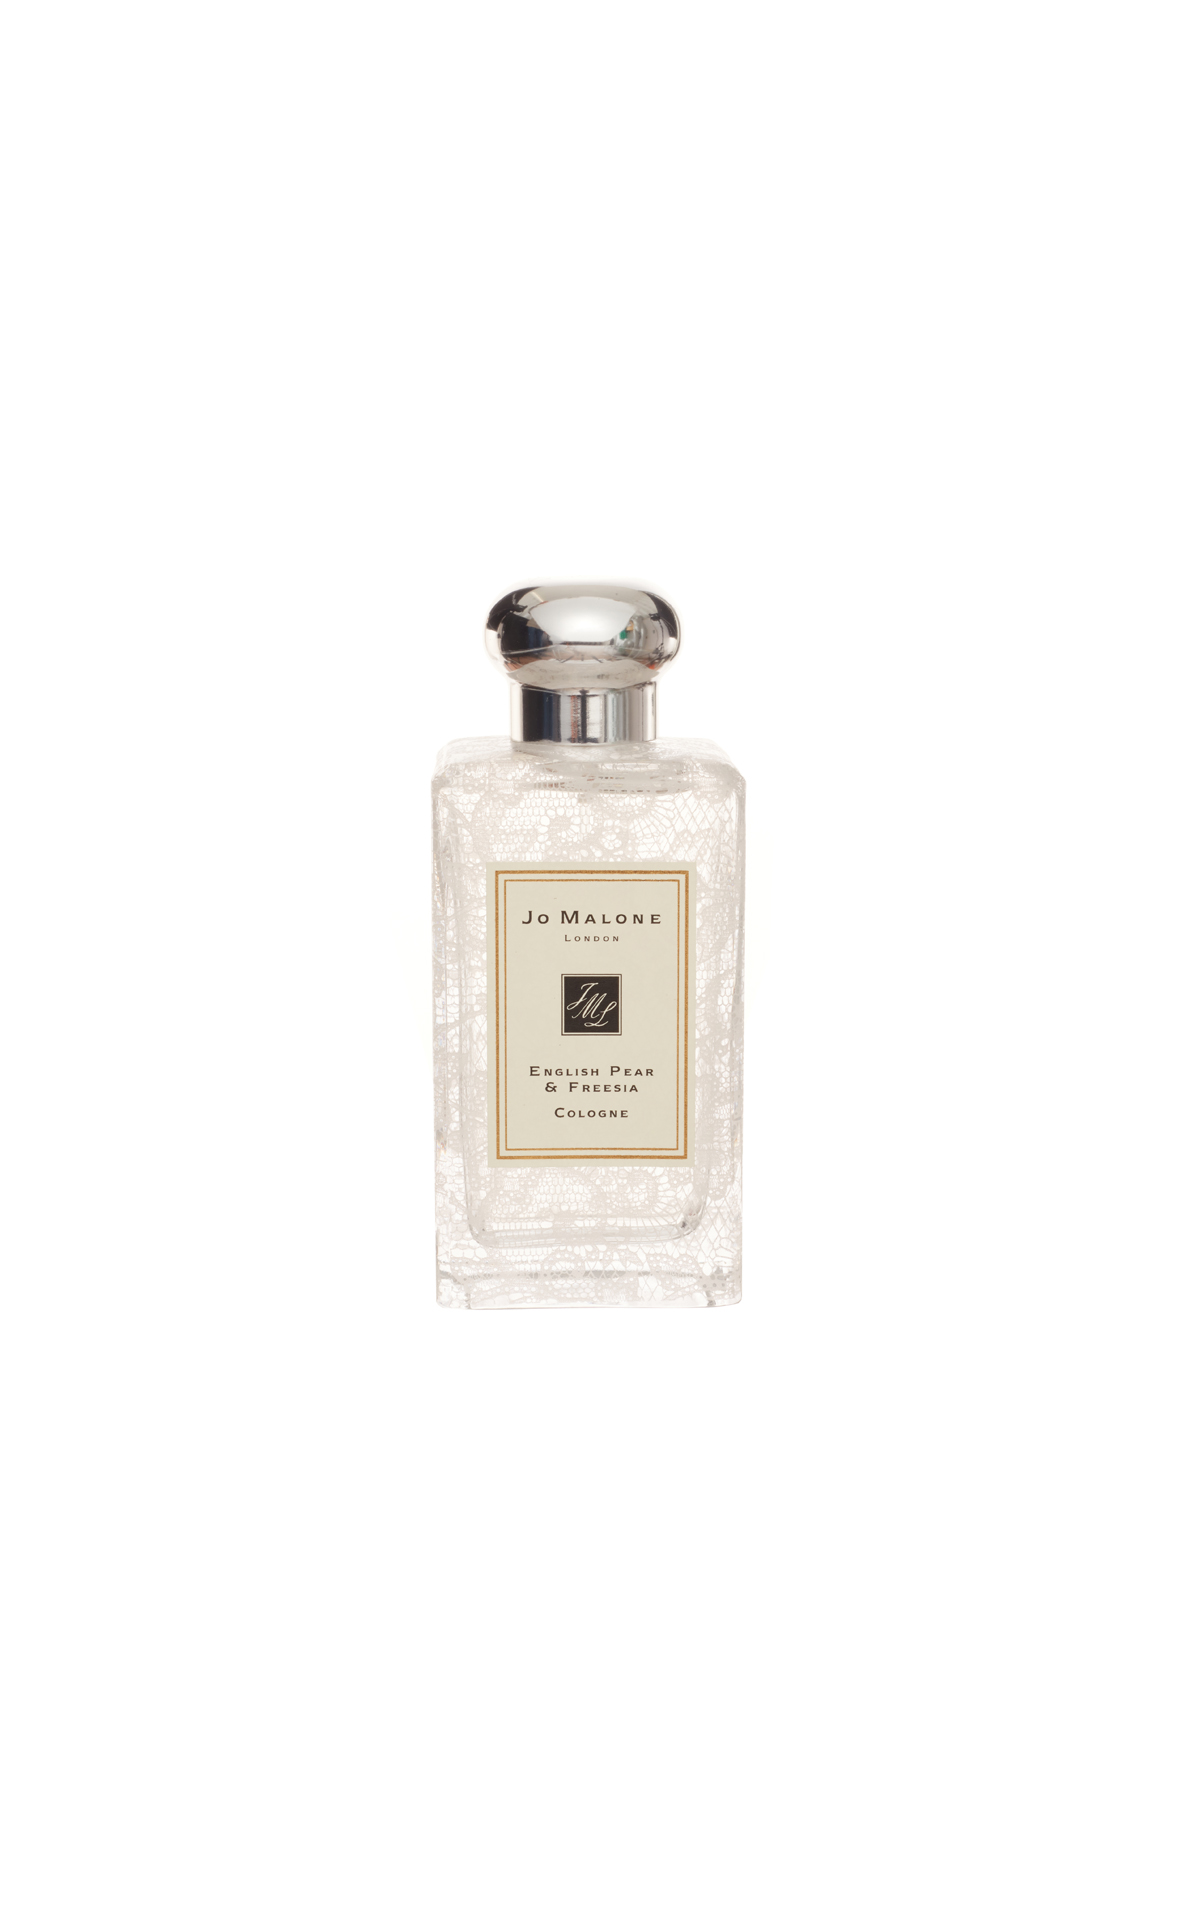 Jo Malone English pear and freesia cologne 100ml from Bicester Village